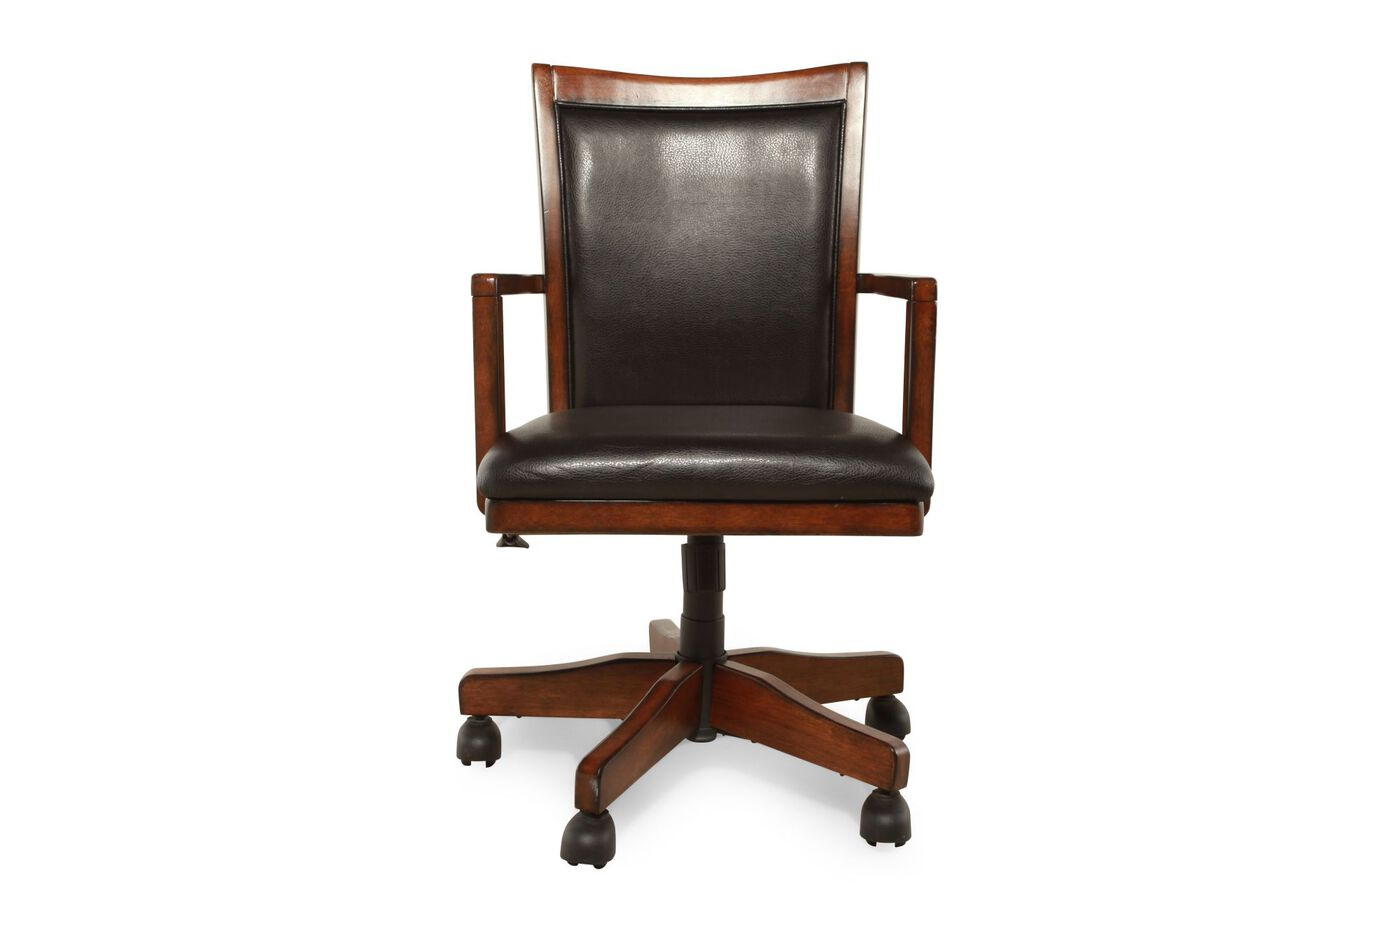 Ashley hamlyn office chair mathis brothers furniture - Ashley furniture office desk ...